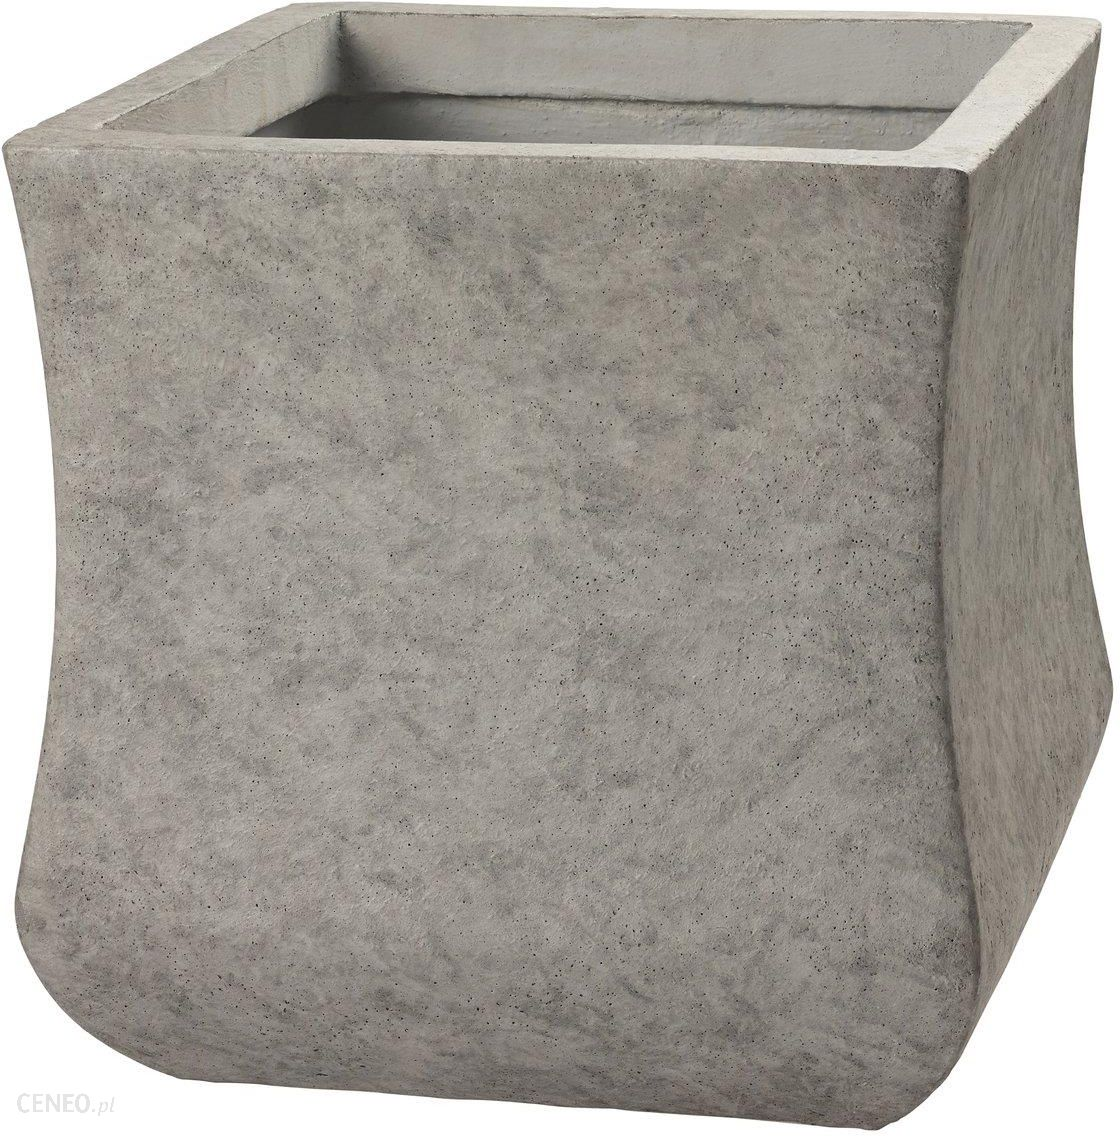 Obi Outdoor Living Donica La Rochelle Antracyt 41x41x41